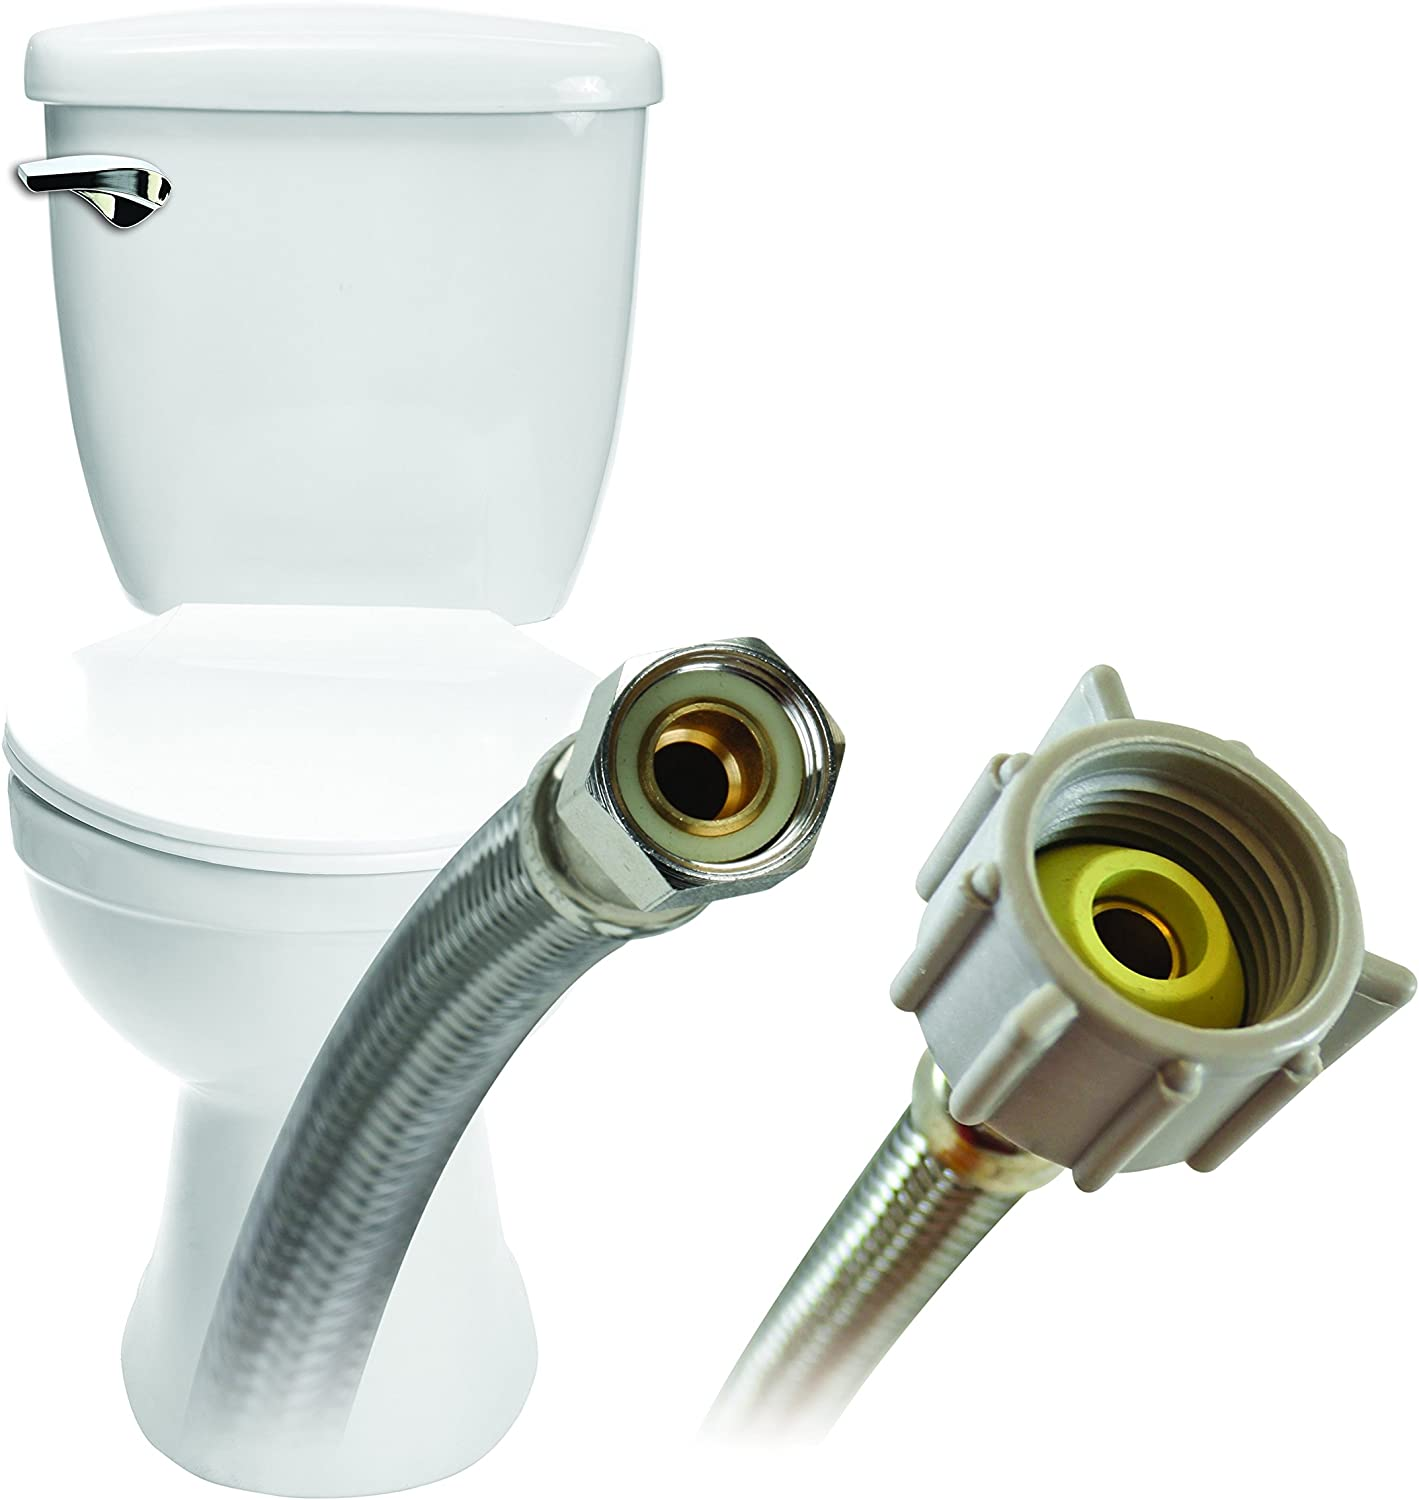 3//8 Female Compression Thread x 7//8 Female Ballcock Thread Braided Stainless Steel Fluidmaster B1T16 Toilet Connector 16-Inch Length 2 Pack